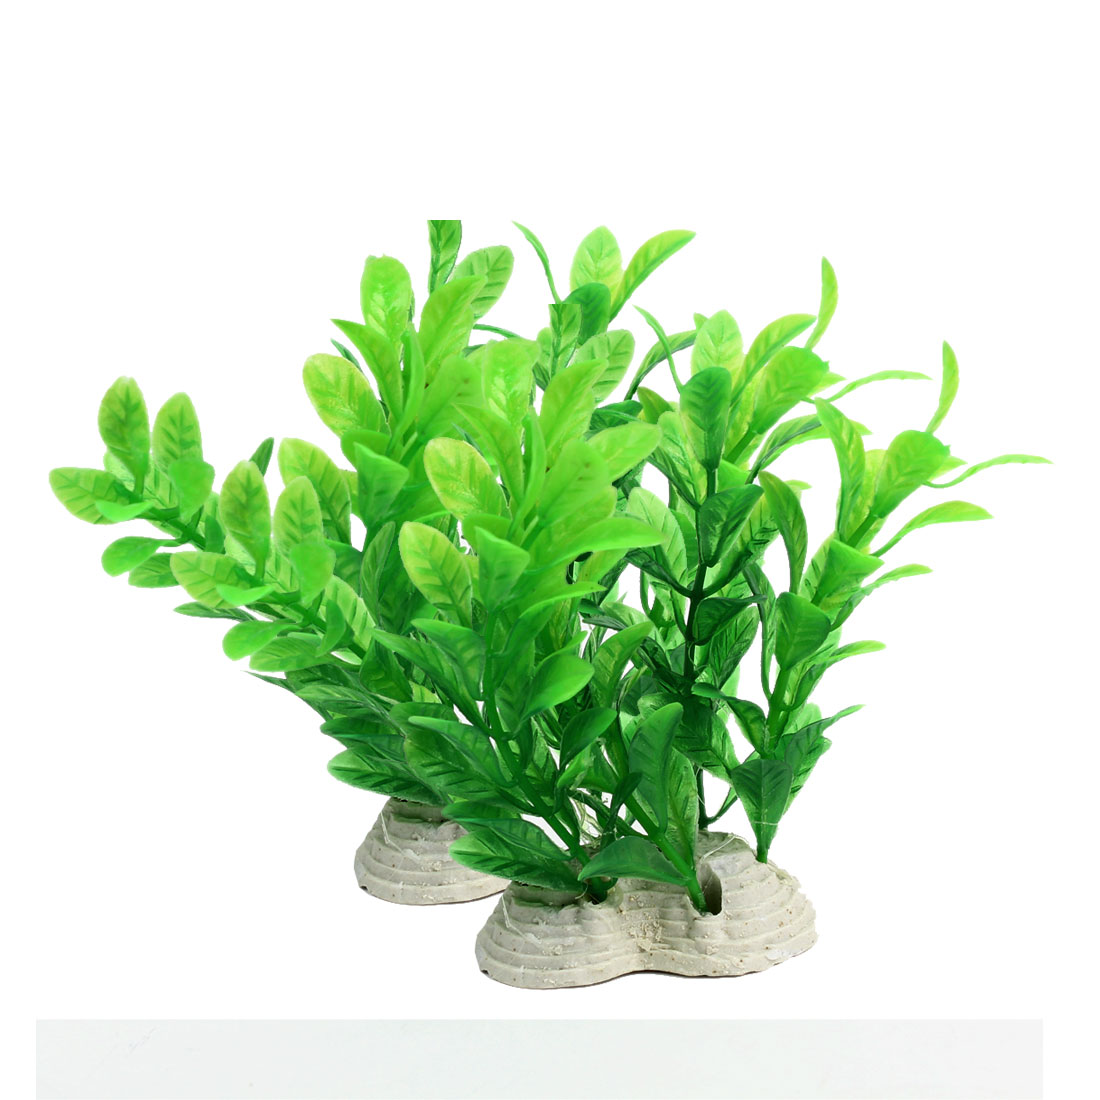 2Pcs 12cm Height Green Plastic Oval Leaves Underwater Plant Fish Tank Decoration